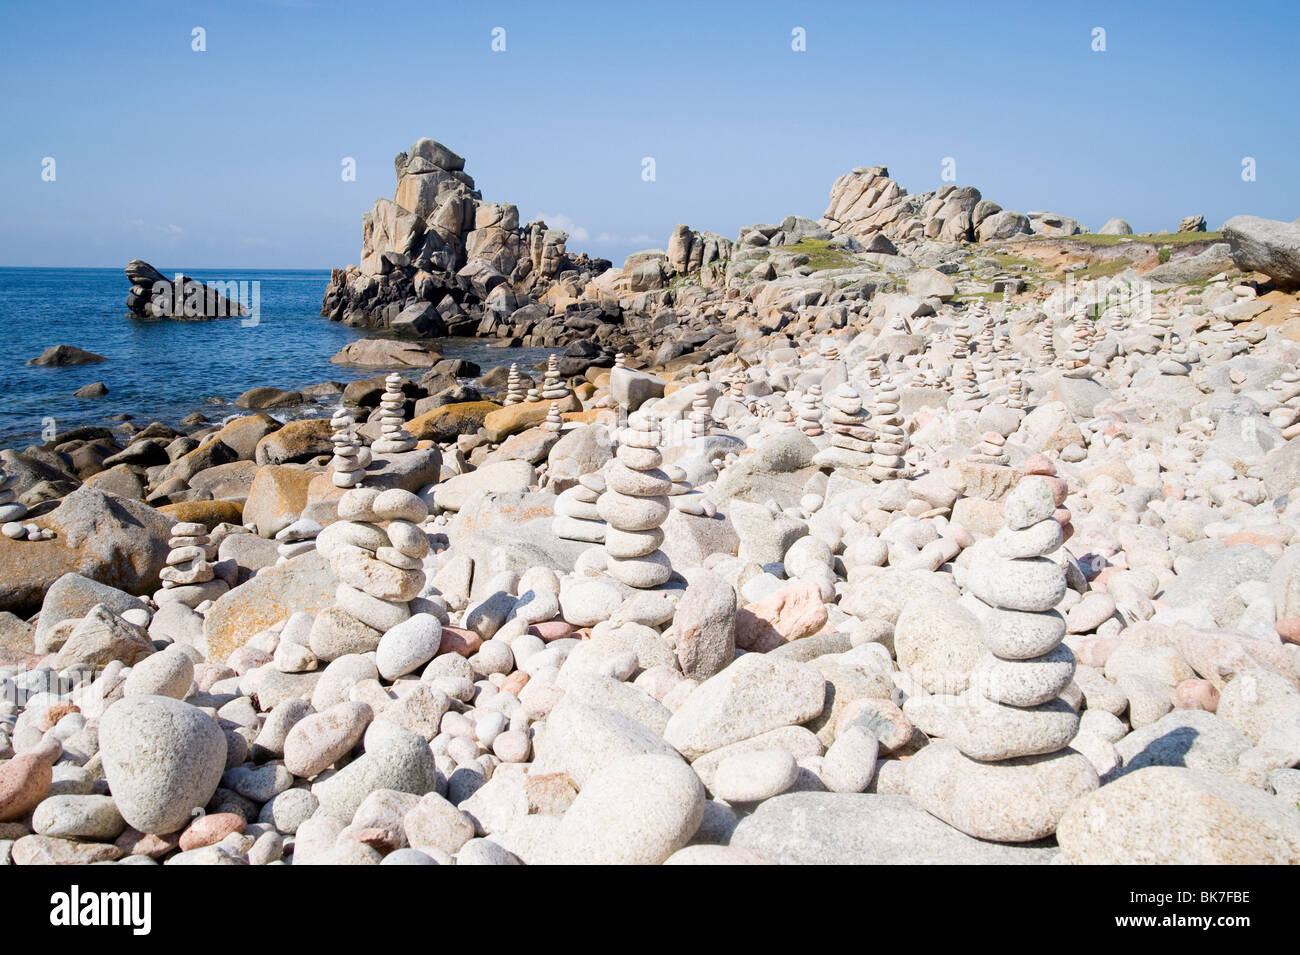 Pebbles on st agnes beach in the isles of scilly - Stock Image